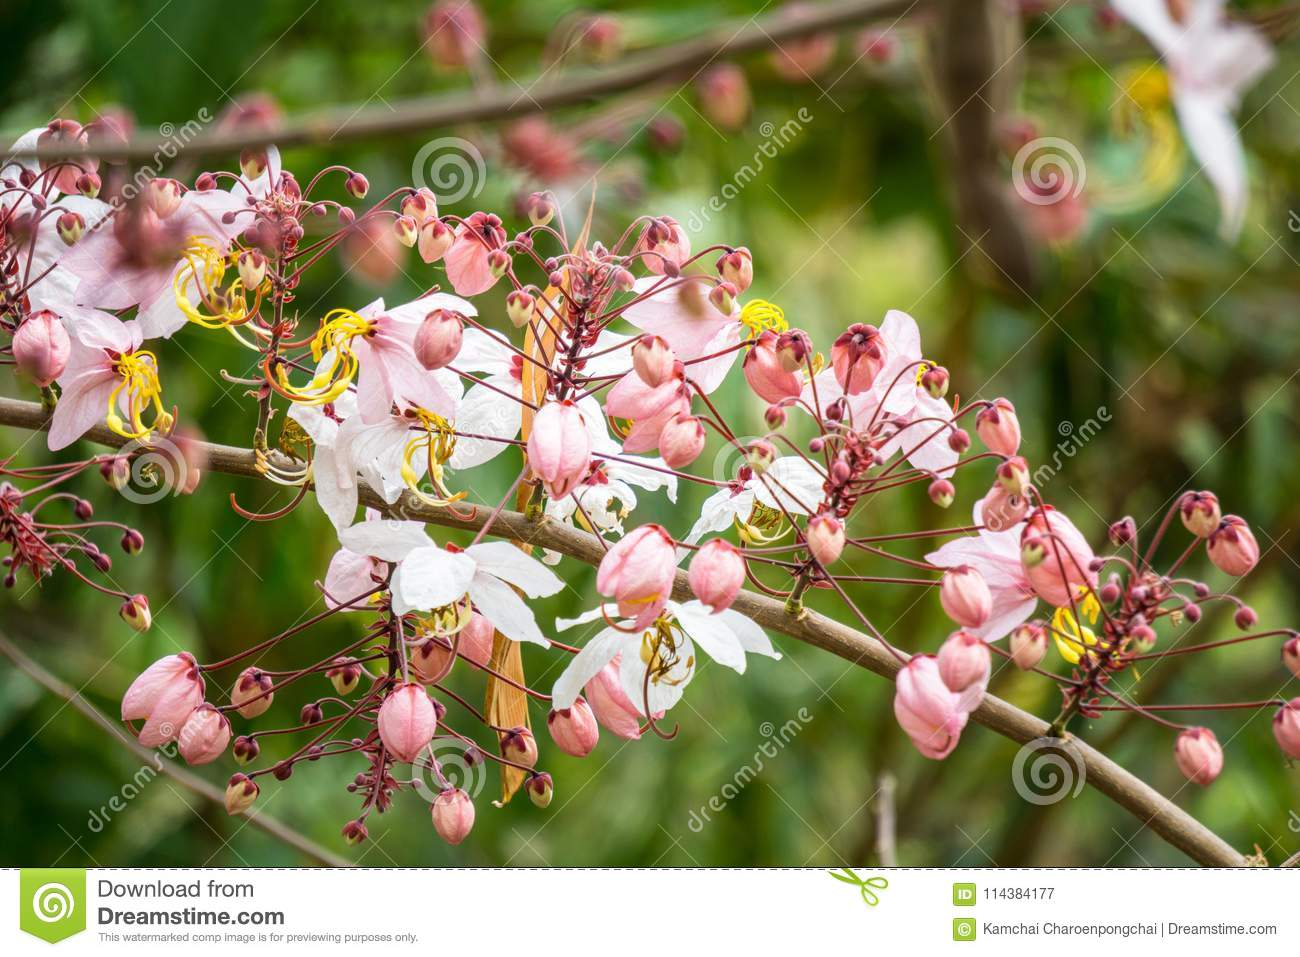 Flowers of cassia bakeriana or common name horse cassia pink flowers of cassia bakeriana or common name horse cassia pink cassia pink shower or wishing tree flowering plants in the legume family usually found in mightylinksfo